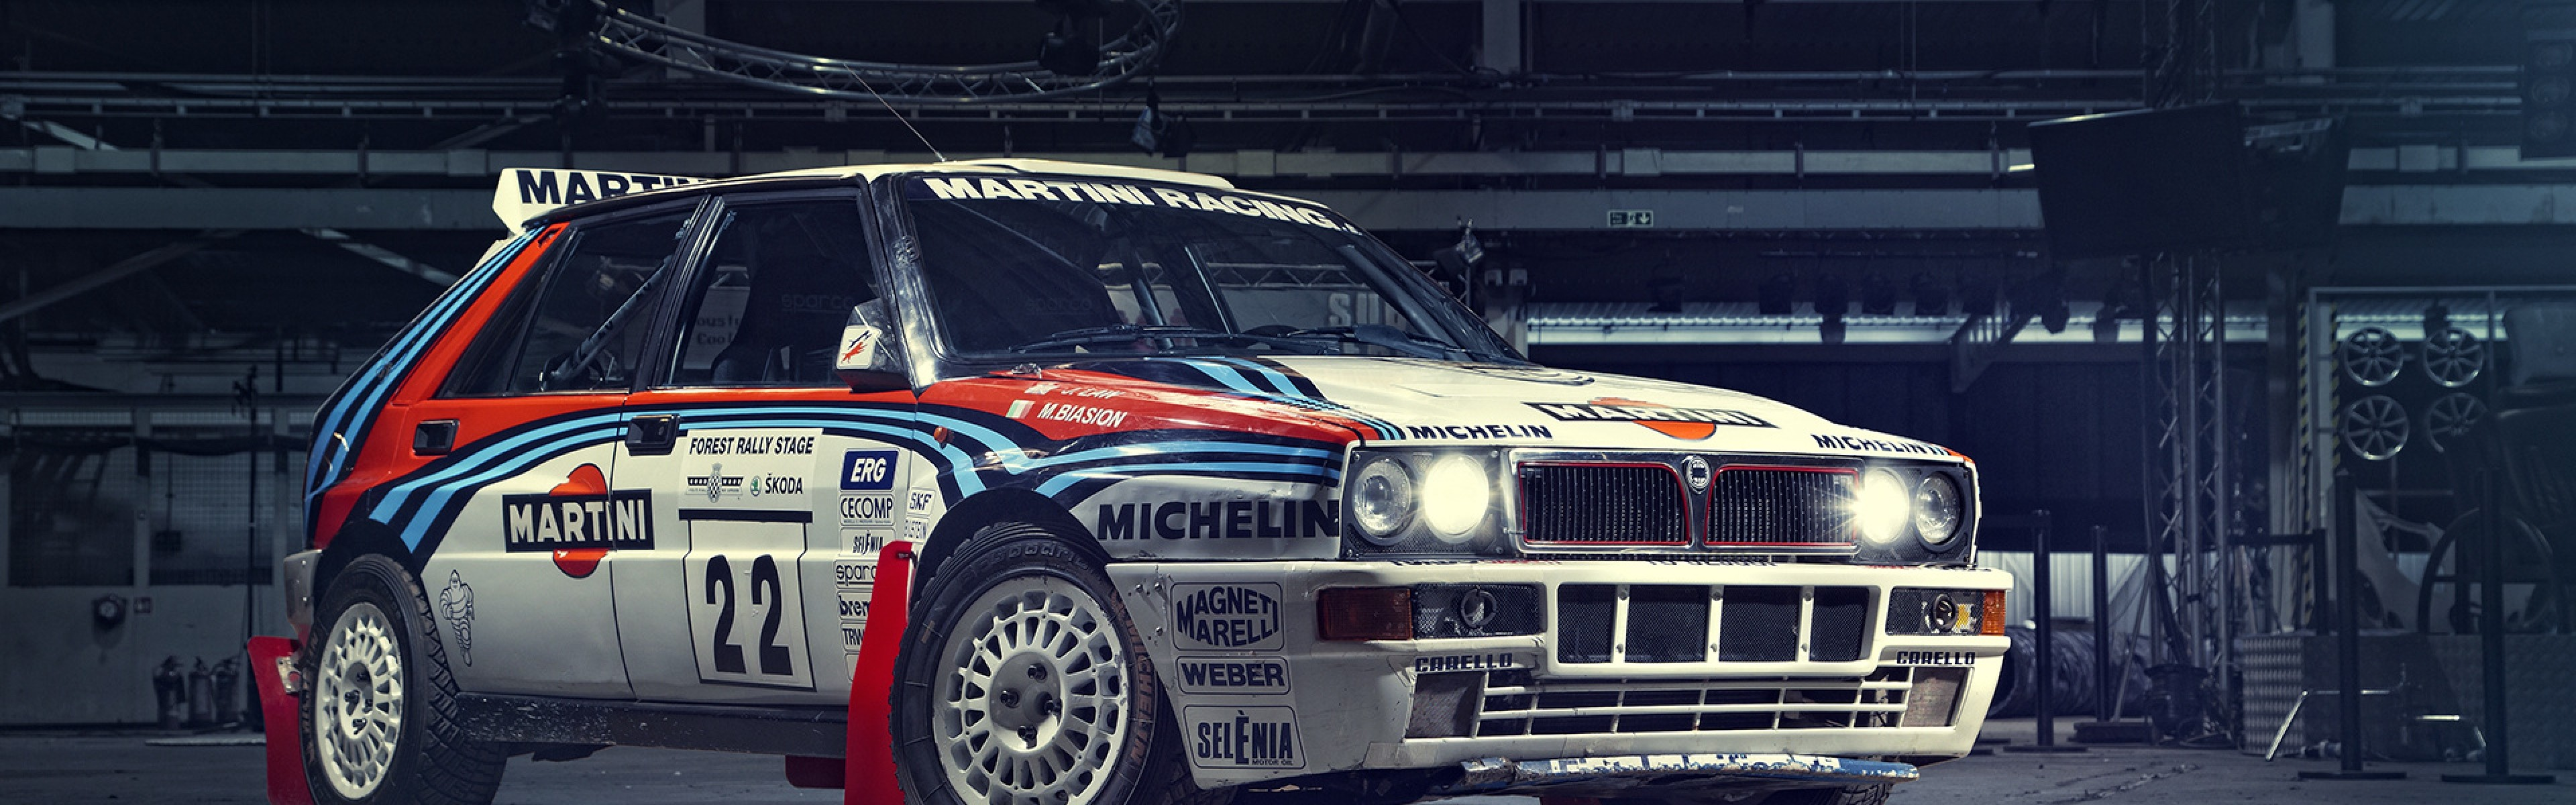 Lancia Wallpapers 73 Images